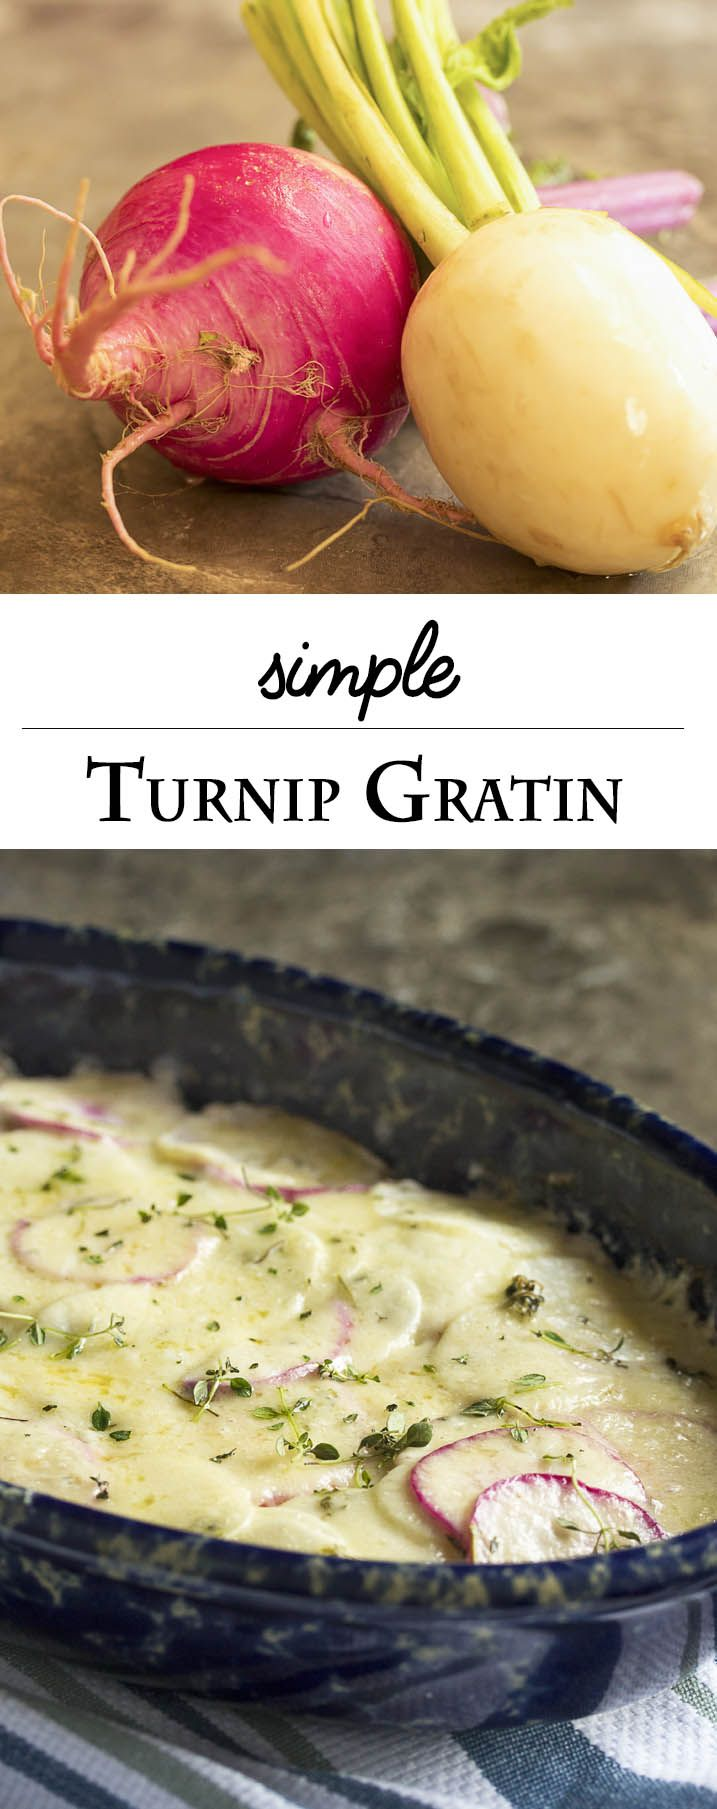 Simple Turnip Gratin - Thinly sliced mild turnips are layered with onion and thyme in this simple gratin, which is finished with a bit of cream and cheese sprinkled over the top just before serving. | justalittlebitofbacon.com